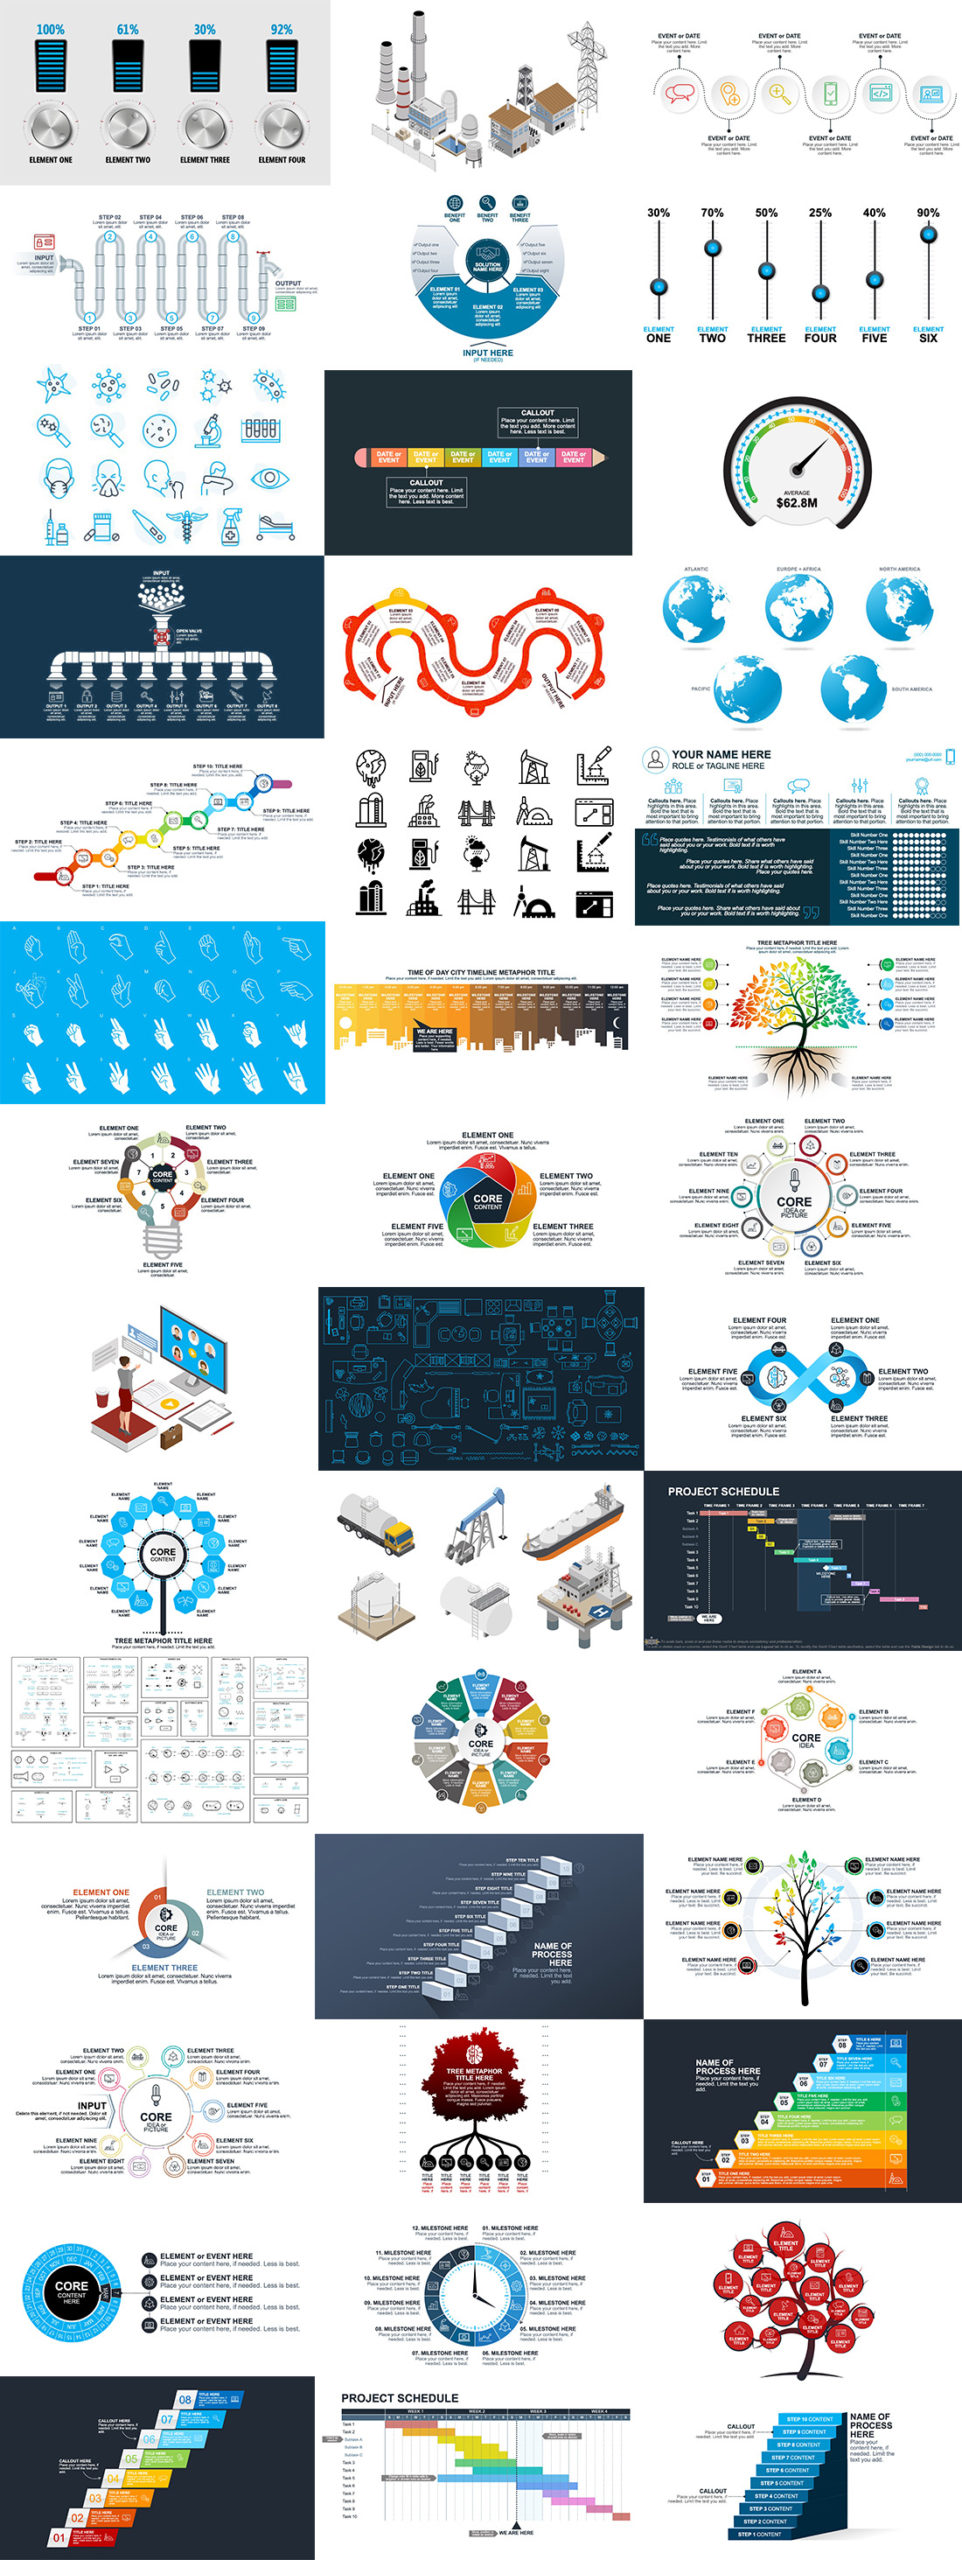 Build-a-Graphic examples